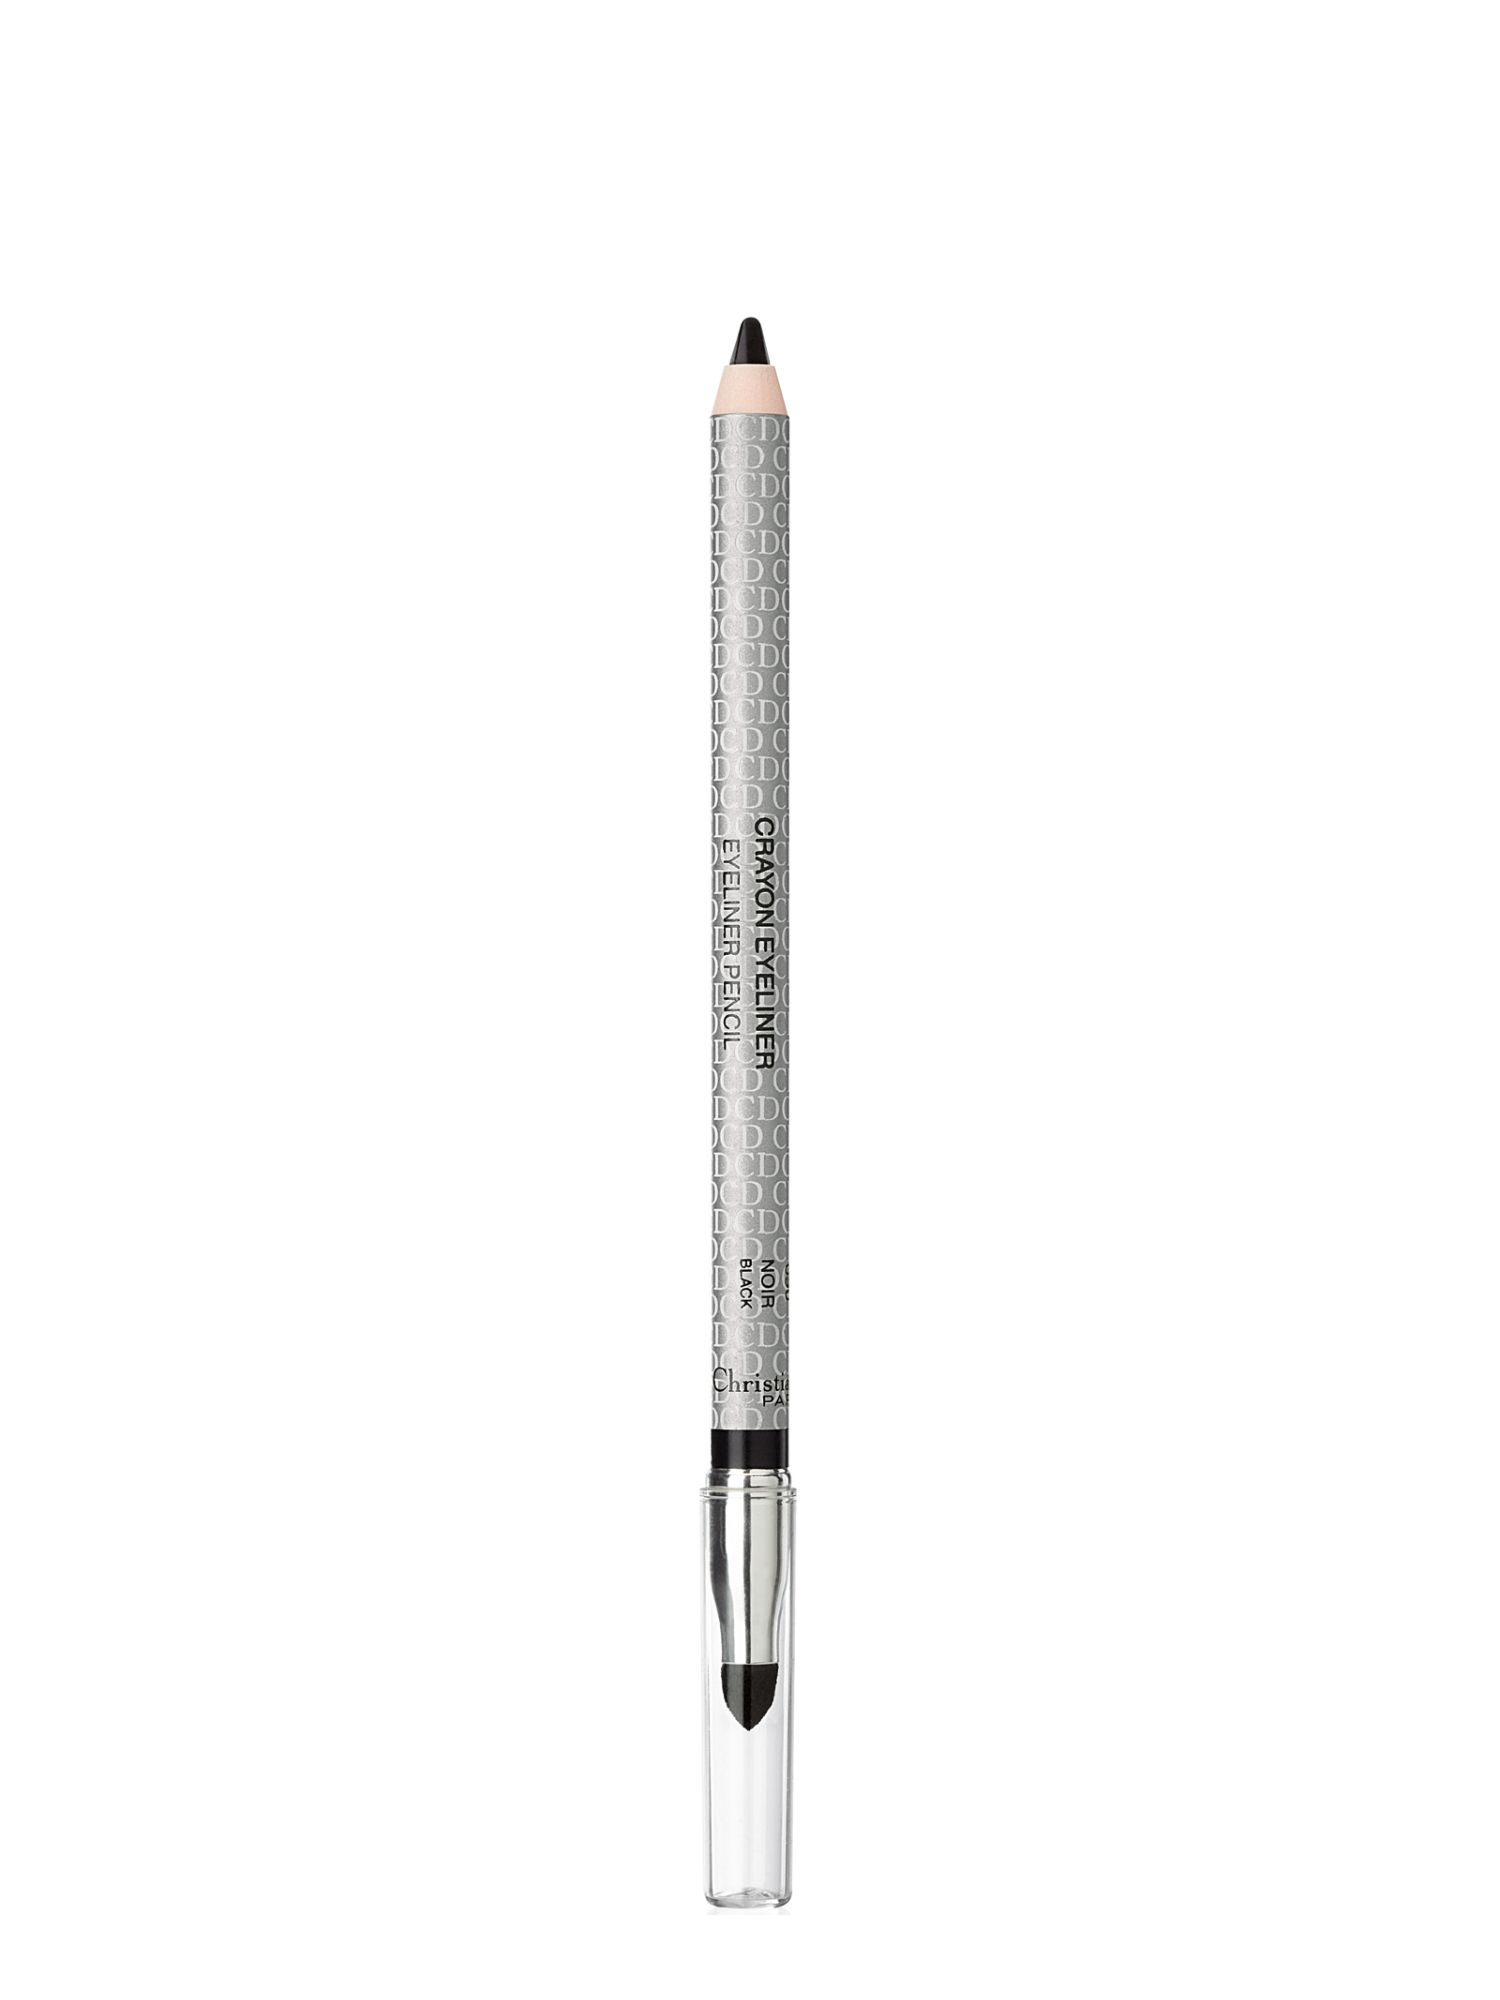 dior crayon eyeliner eyeliner pencil with blending tip review compare prices buy online. Black Bedroom Furniture Sets. Home Design Ideas